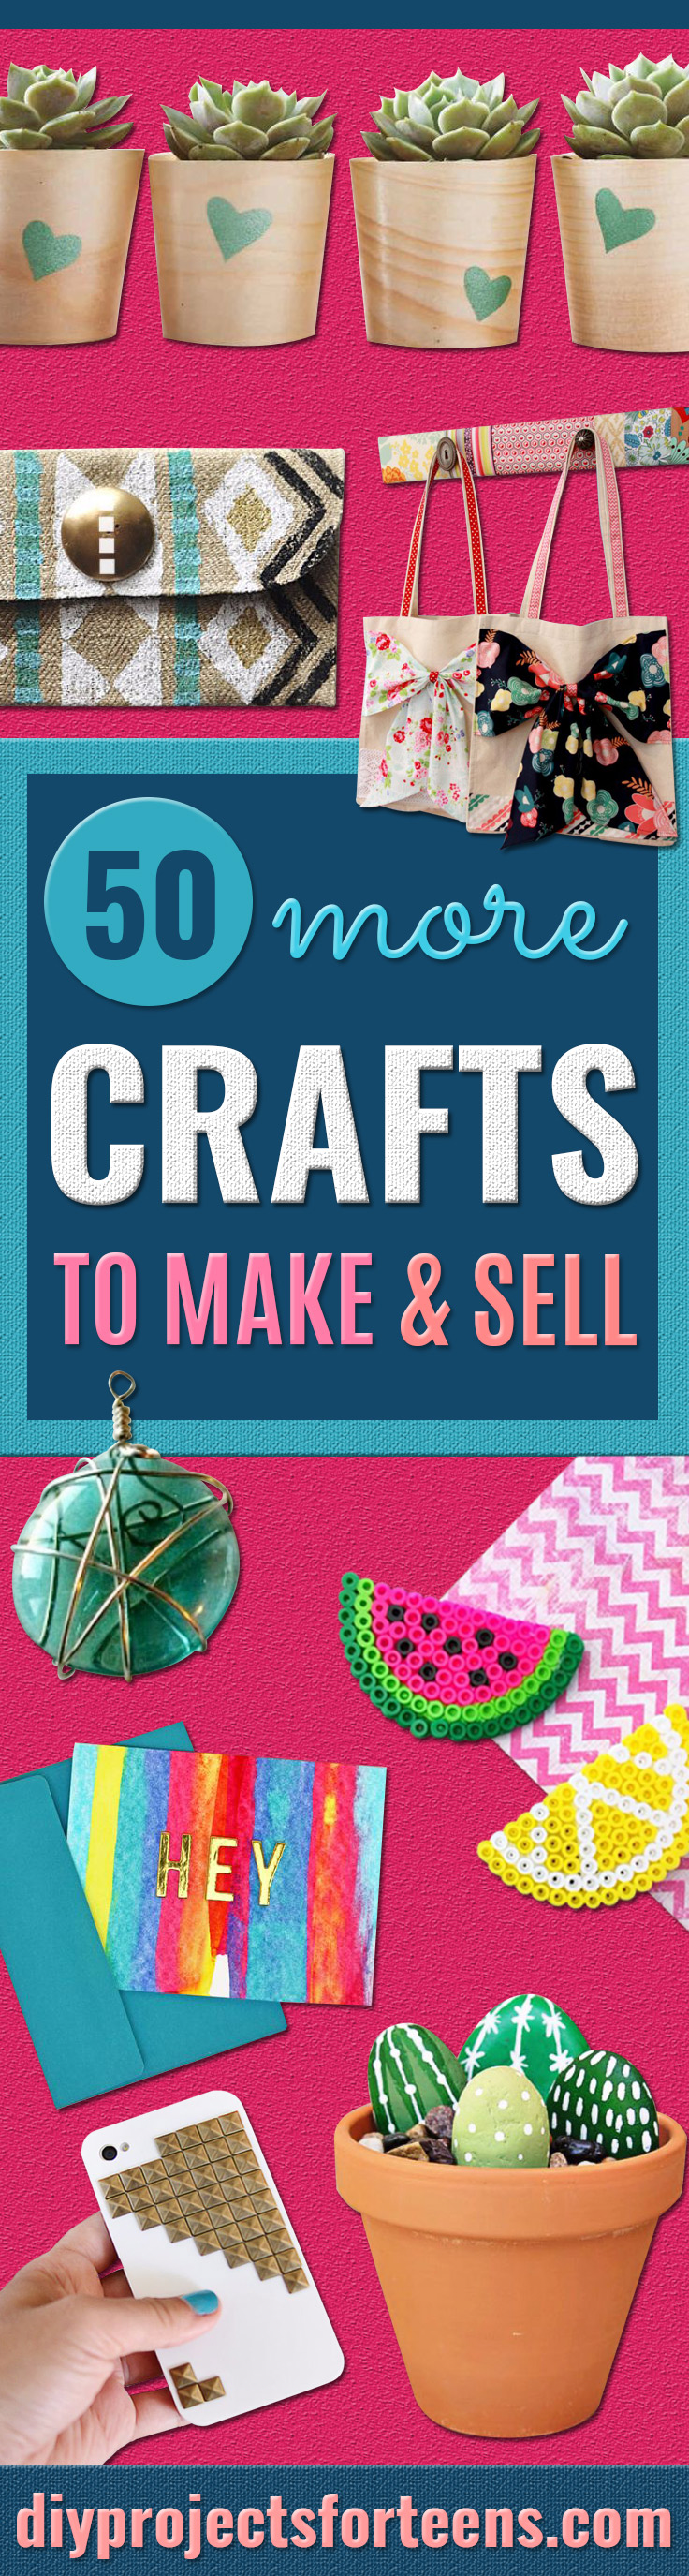 50 More Crafts To Make And Sell